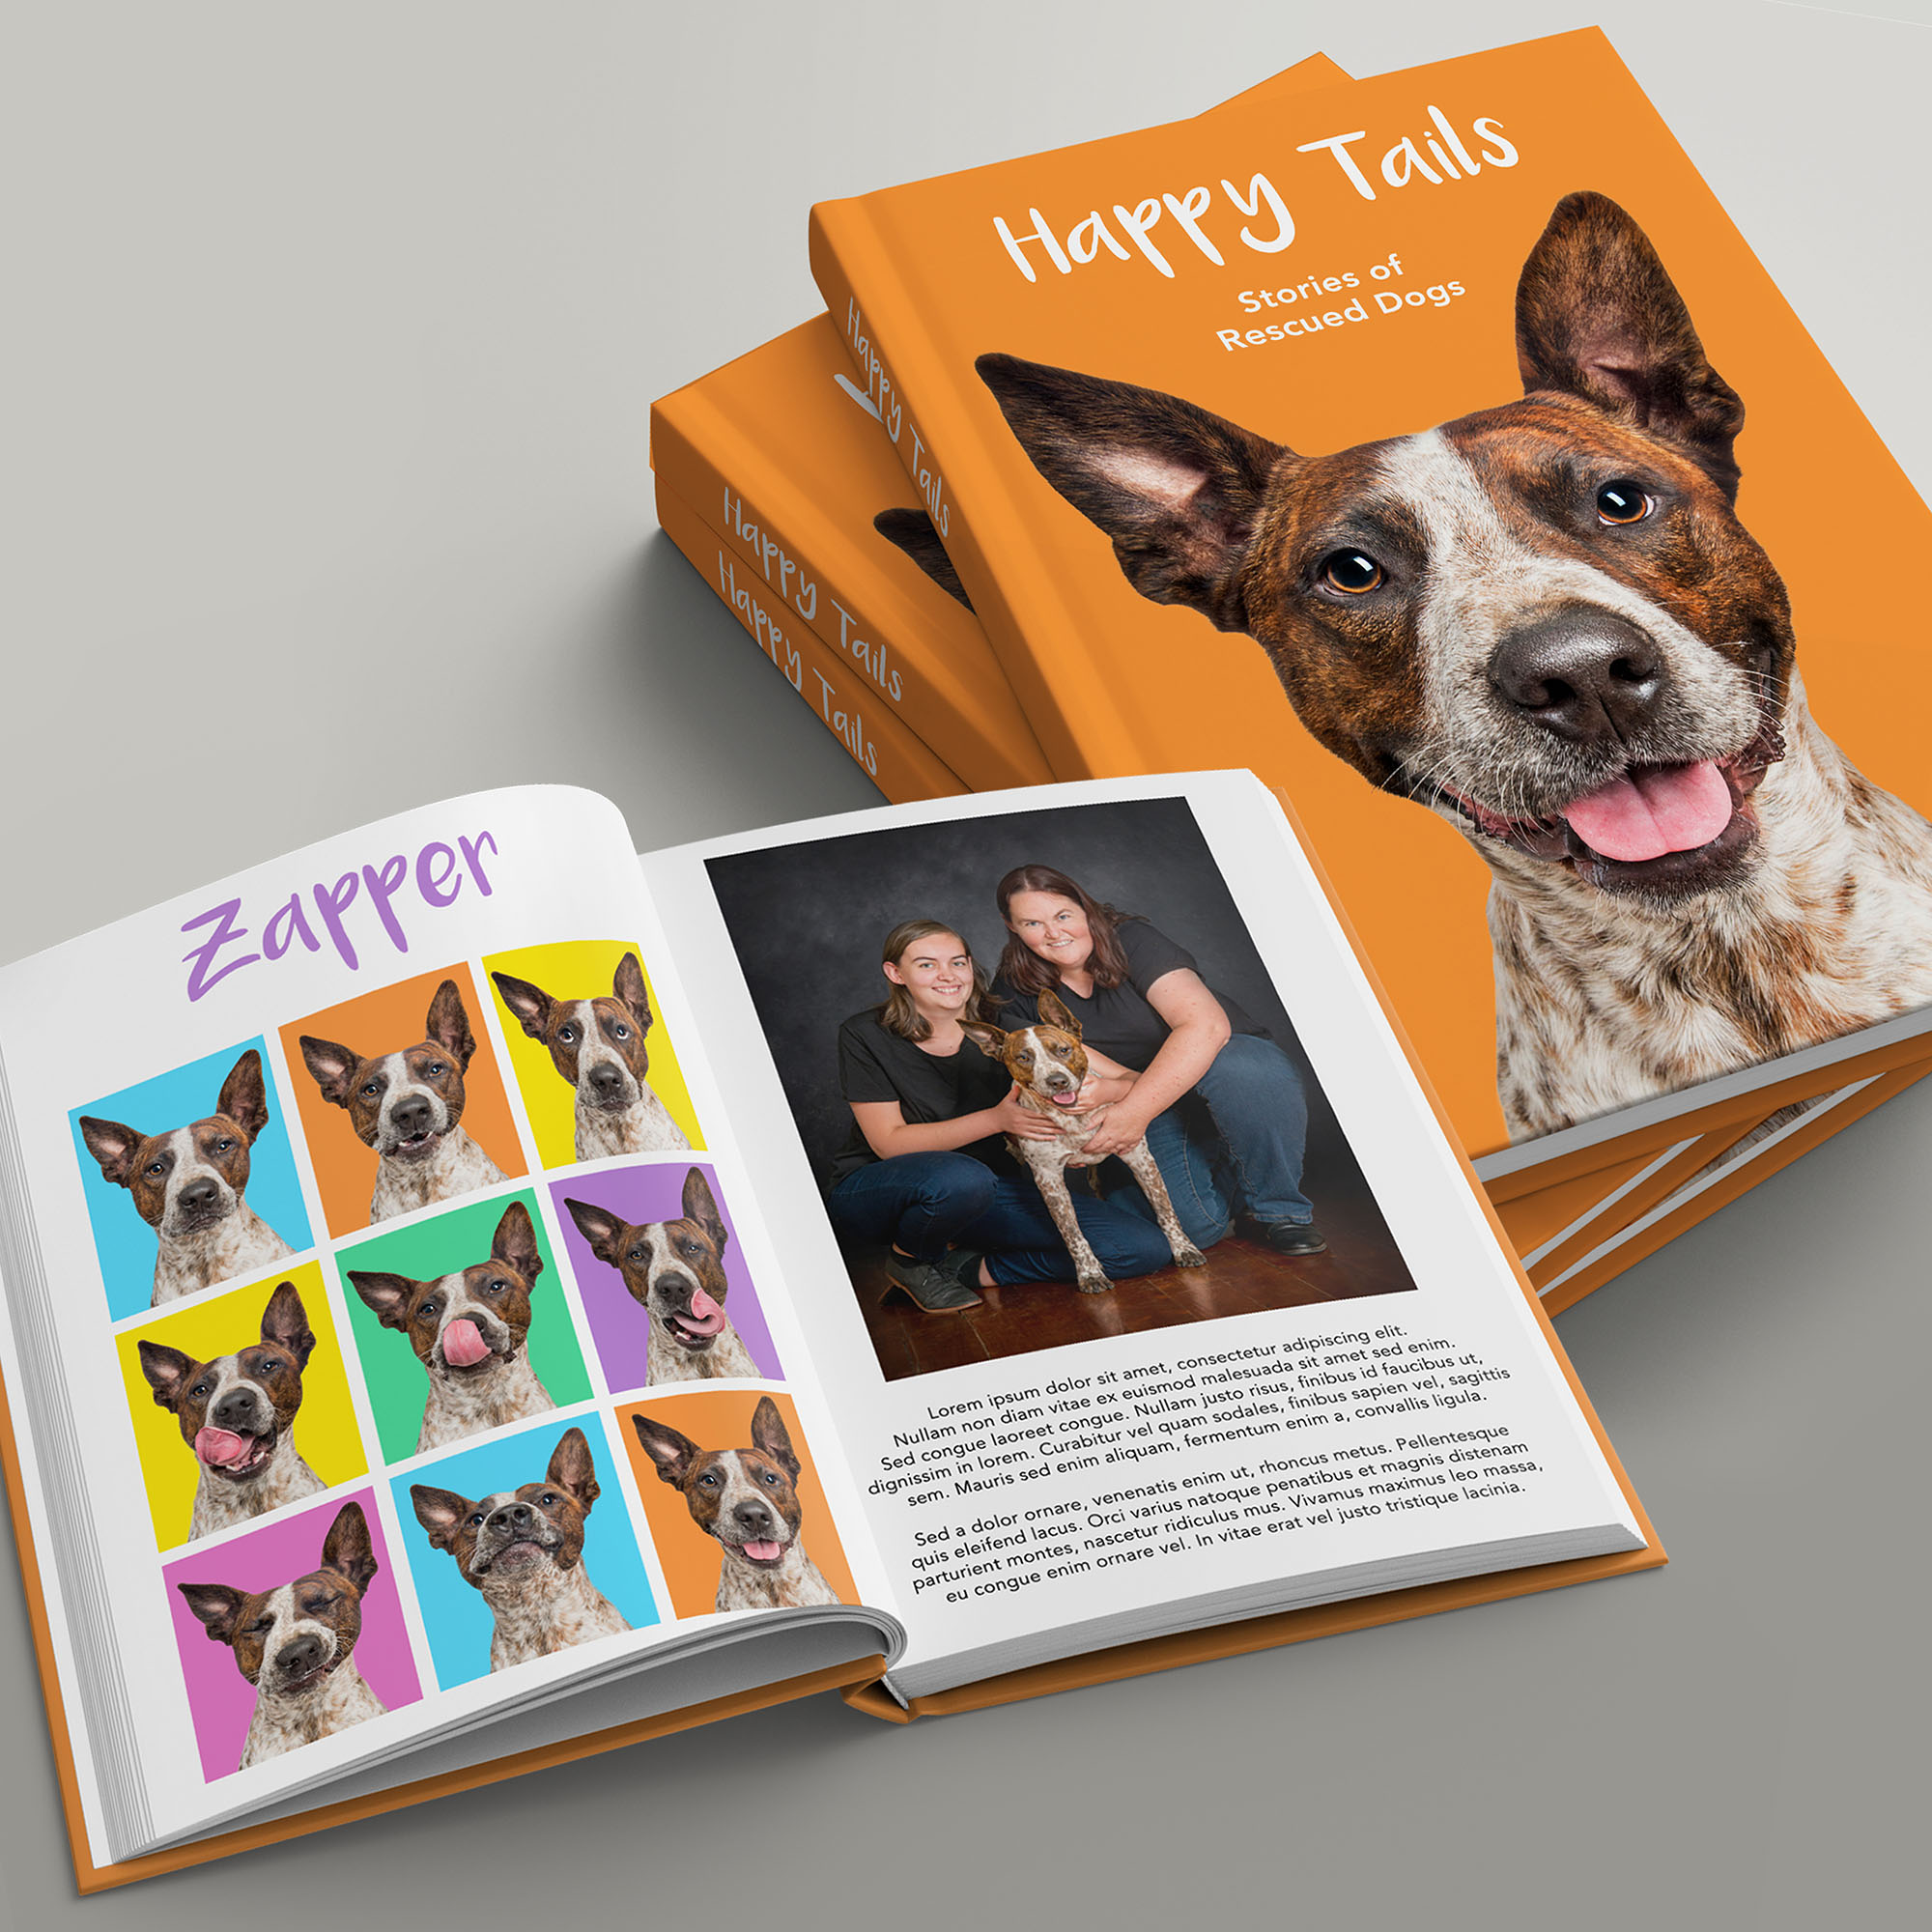 Happy Tails 2 - Registrations are currently open! Do you know a Dog with an amazing Story?